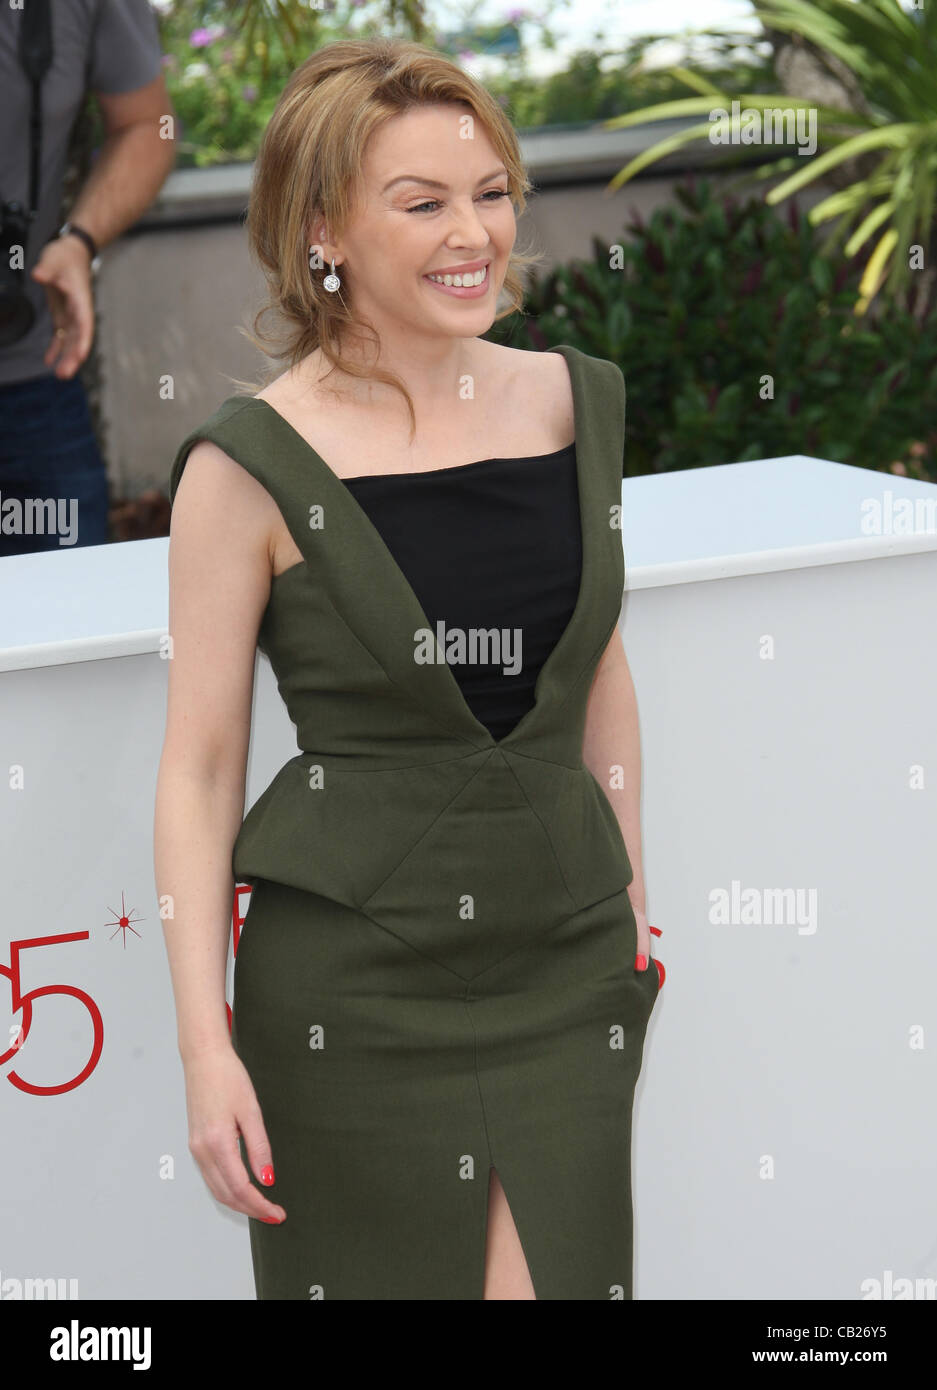 KYLIE MINOGUE HOLY MOTORS PHOTOCALL CANNES FILM FESTIVAL 2012 PALAIS DES FESTIVAL CANNES FRANCE 23 May 2012 - Stock Image